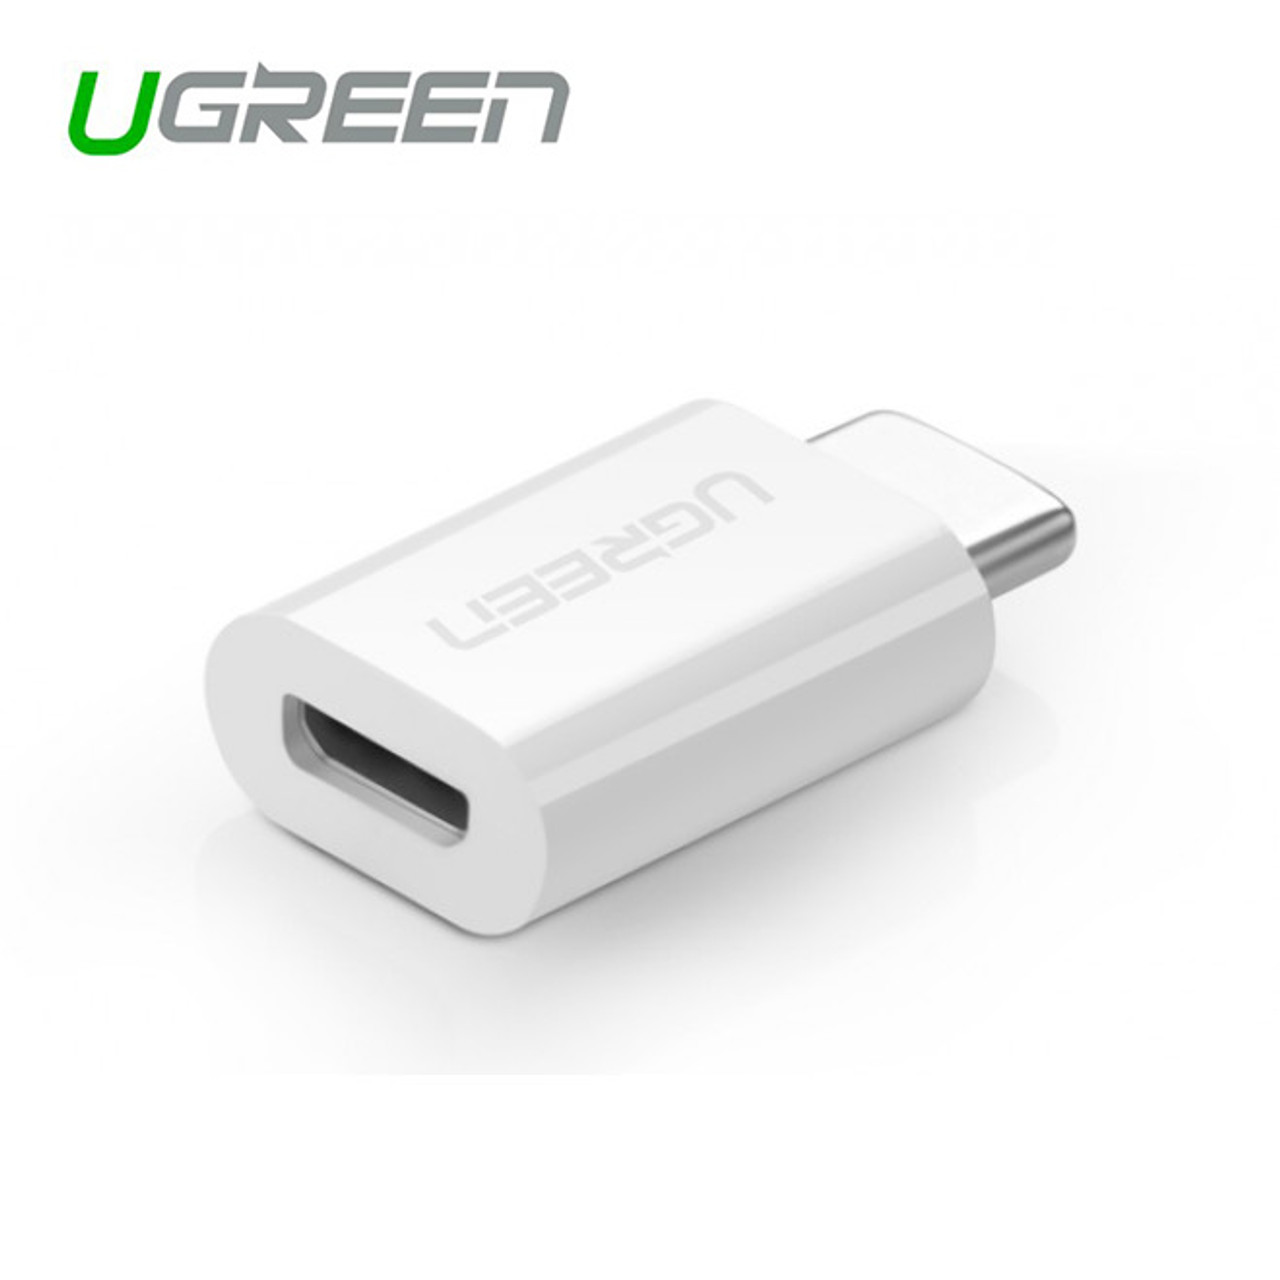 Product image for Adapter USB 3.1 Type-C to Micro USB | CX Computer Superstore